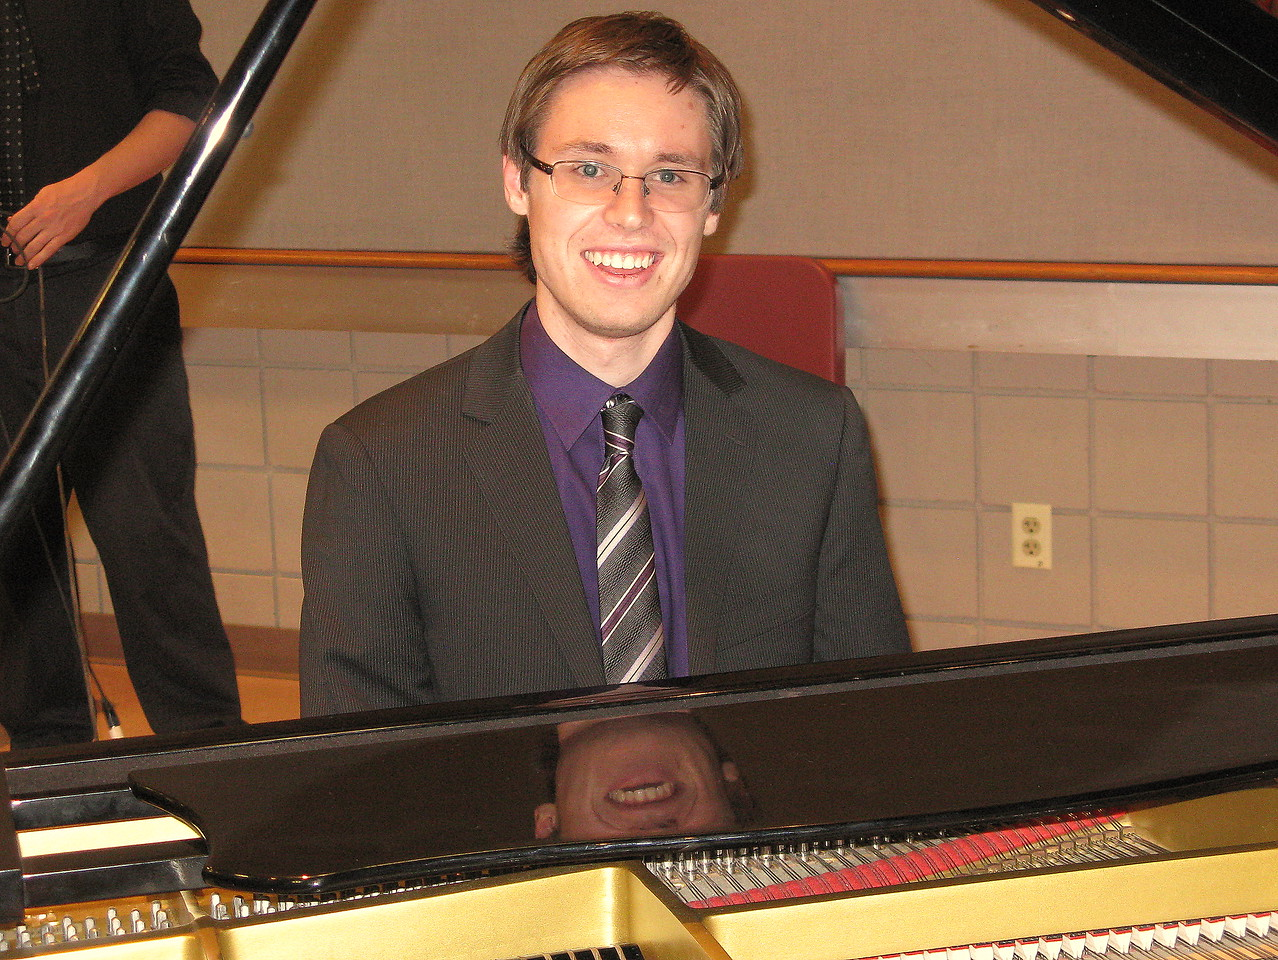 Kevin at the keboard of the baby grand piano.